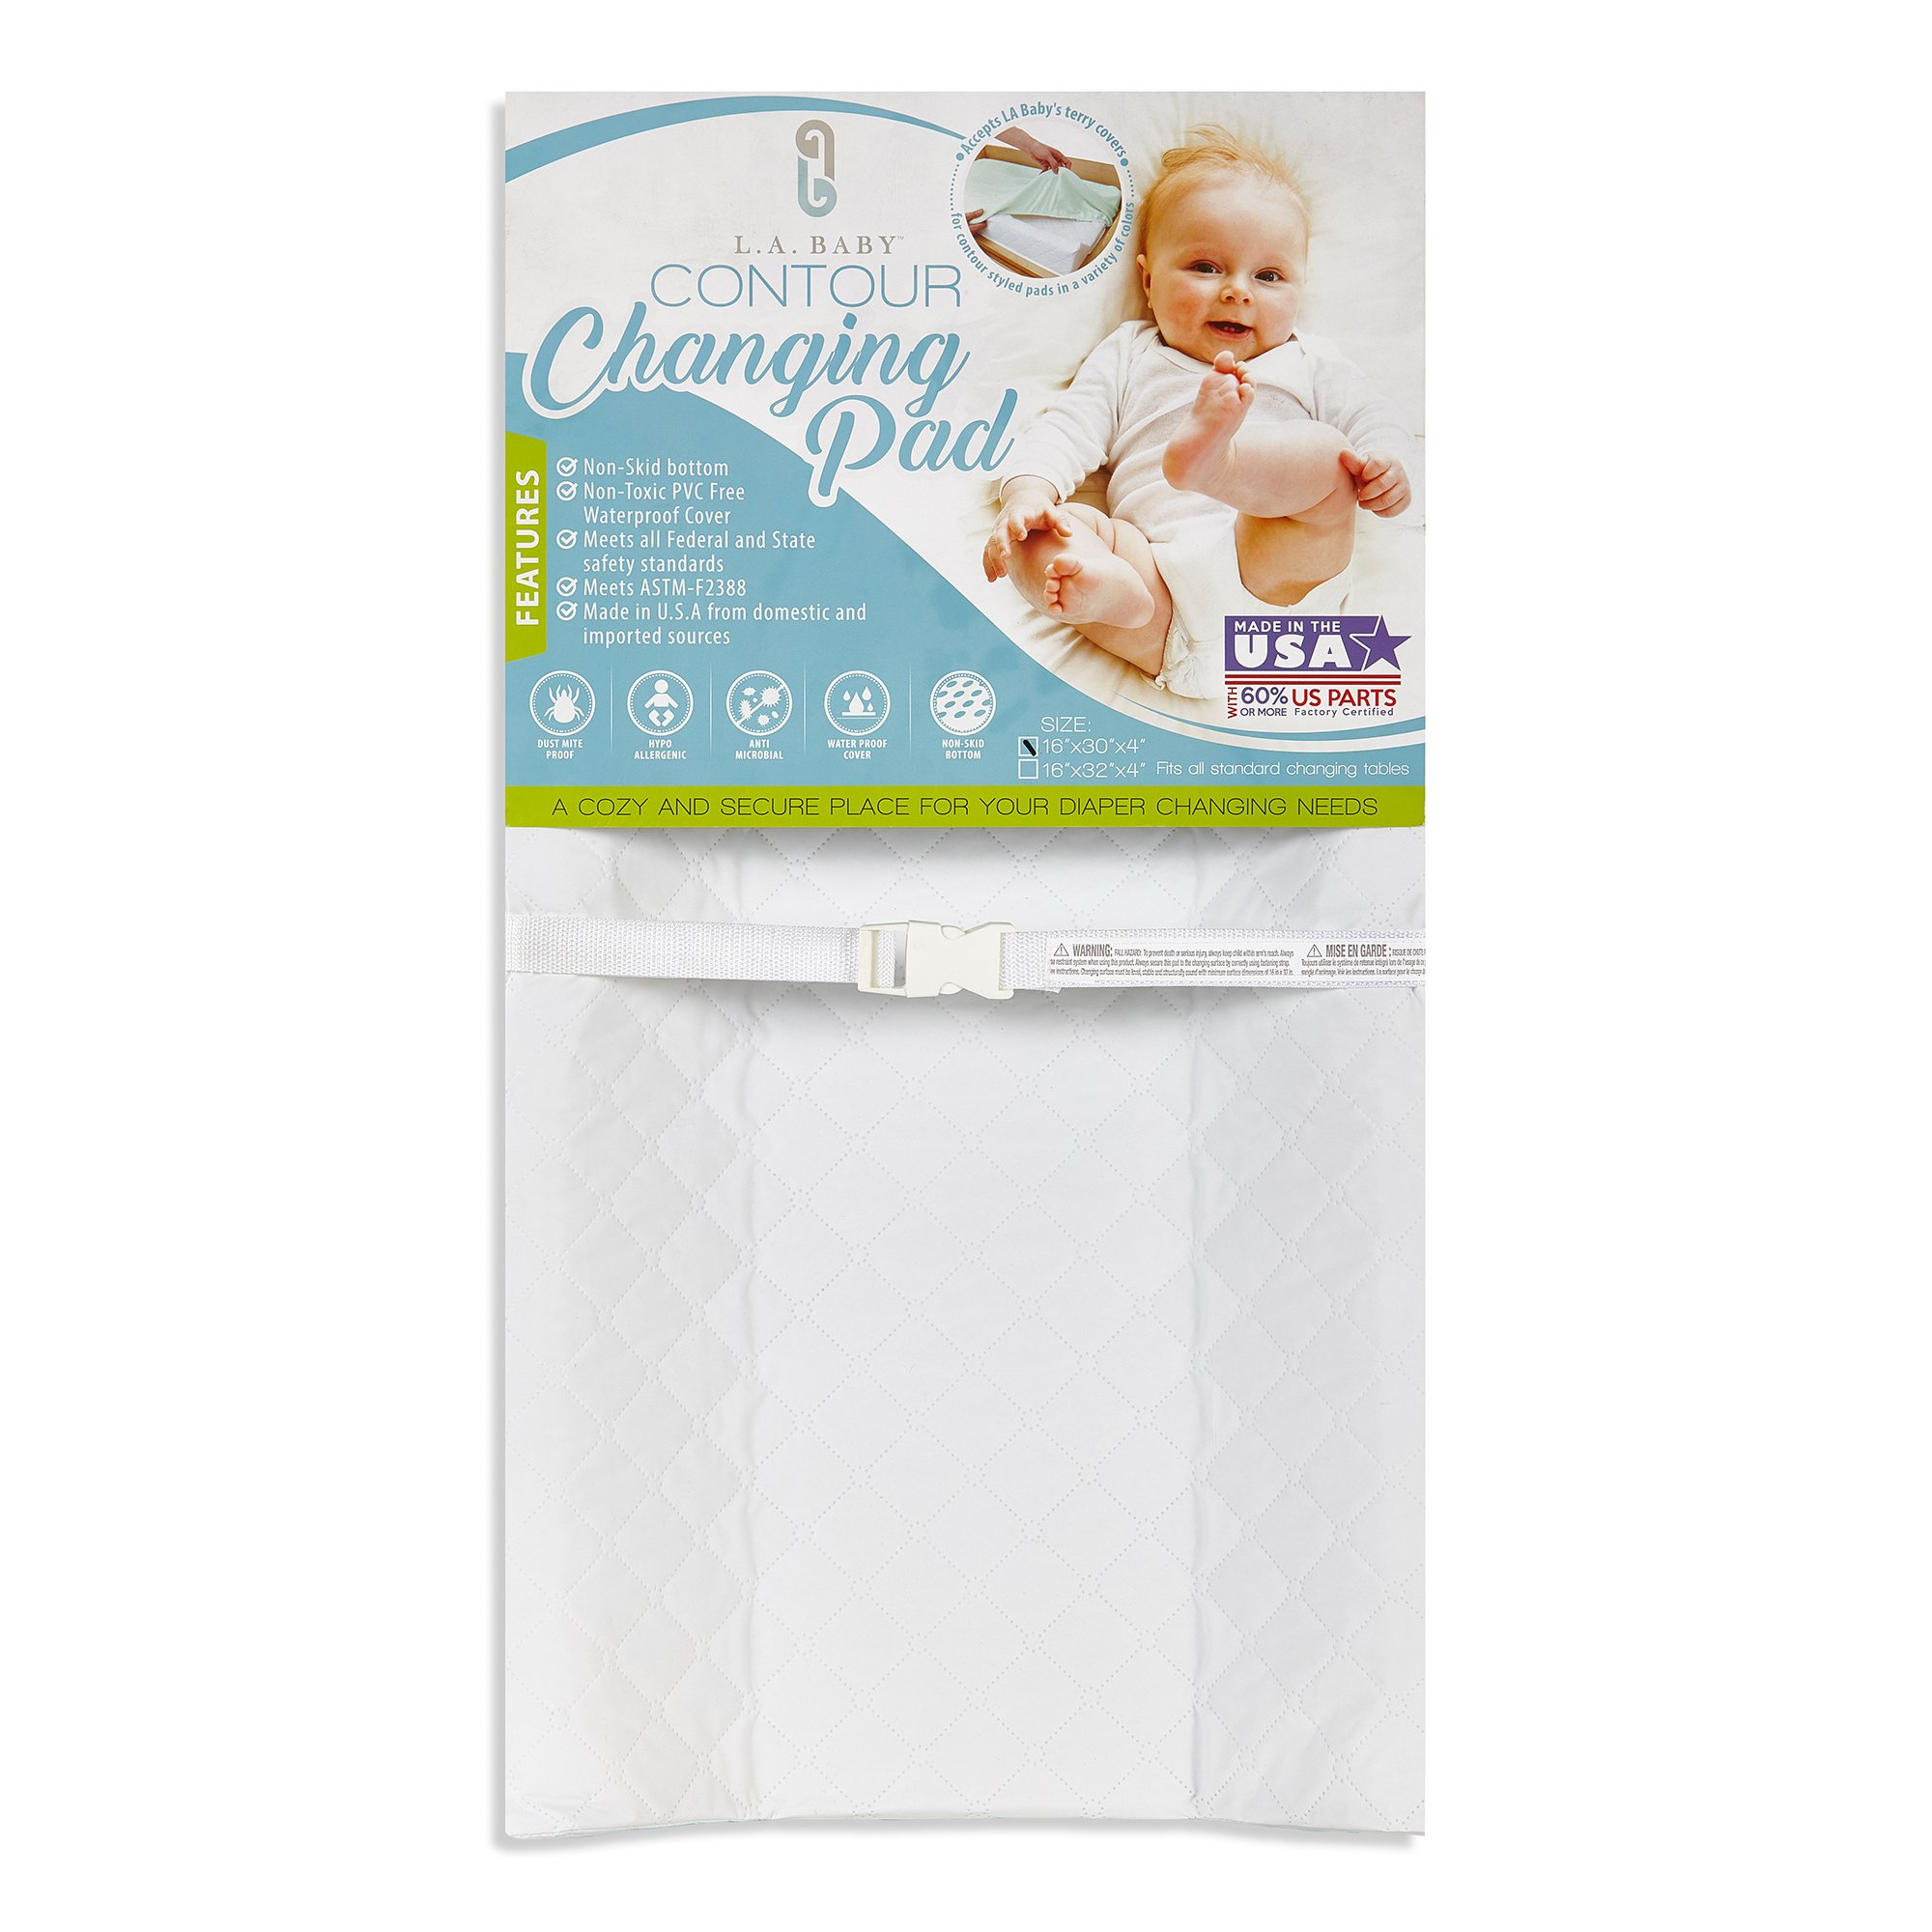 LA Baby Waterproof Contour Changing Pad, 30'' - Made in USA. Easy to Clean w/Non-Skid Bottom, Safety Strap, Fits All Standard Changing Tables/Dresser Tops for Best Infant Diaper Change